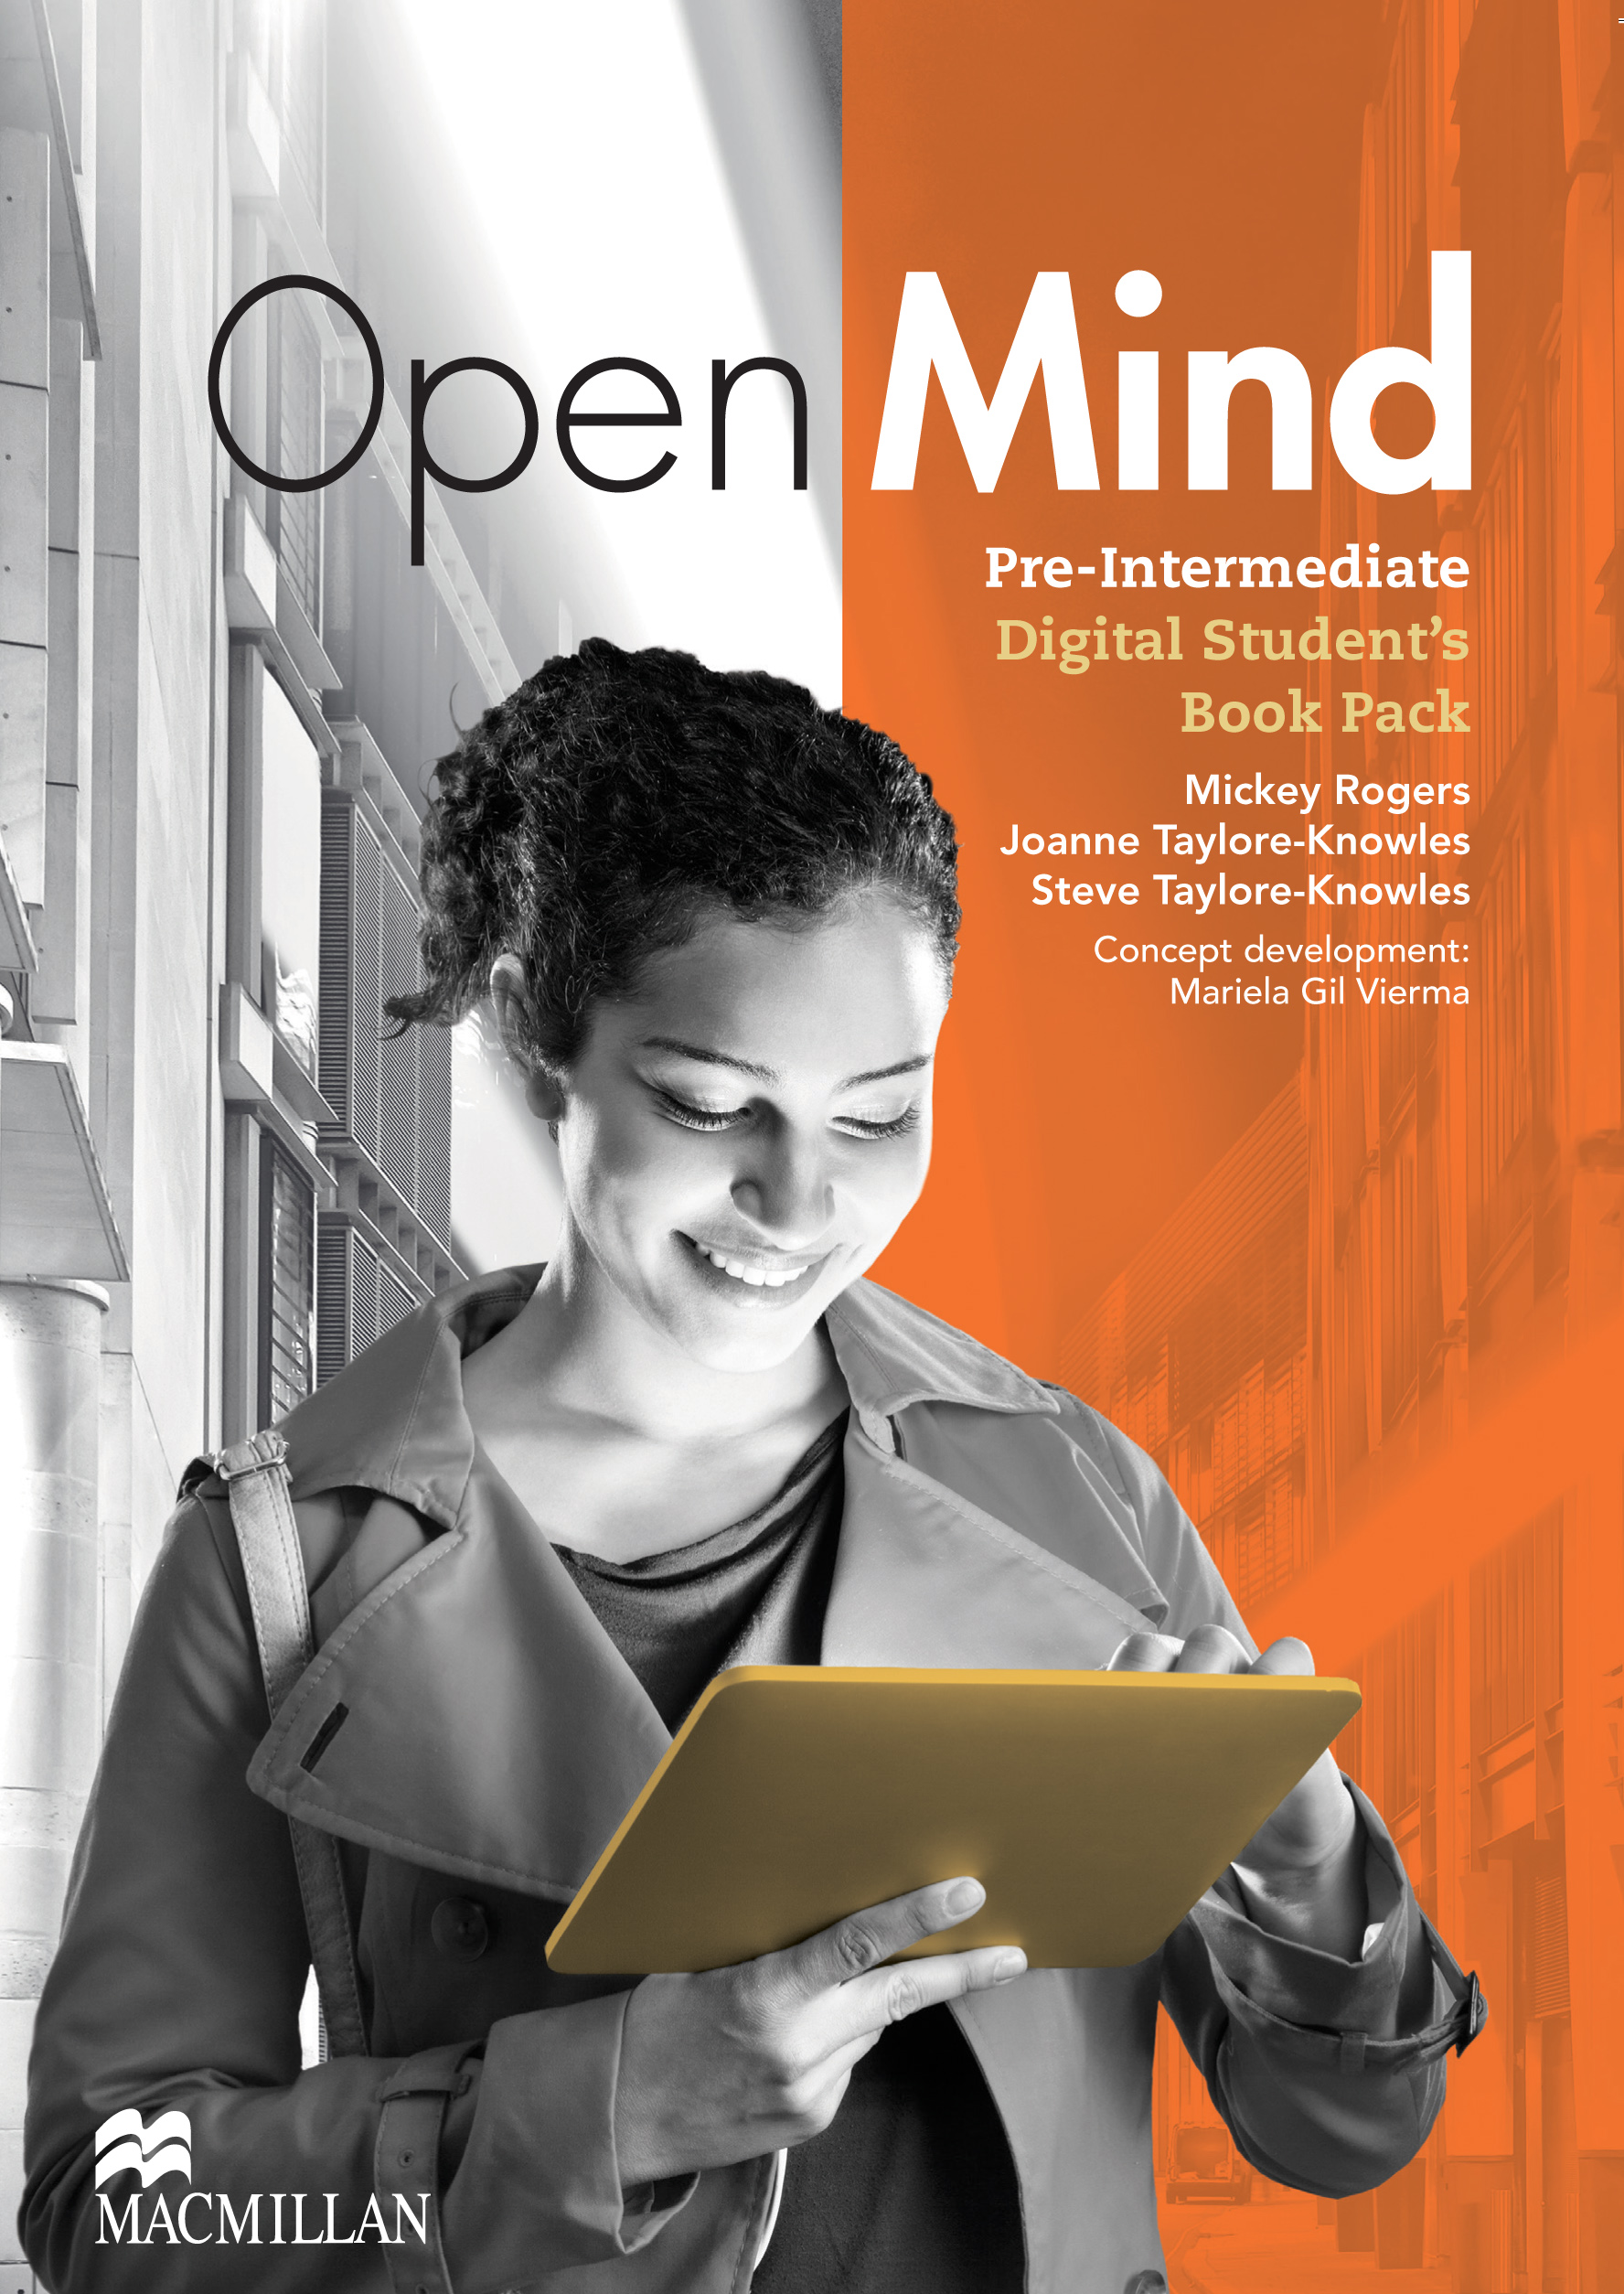 Open Mind Pre-Intermediate Digital Student